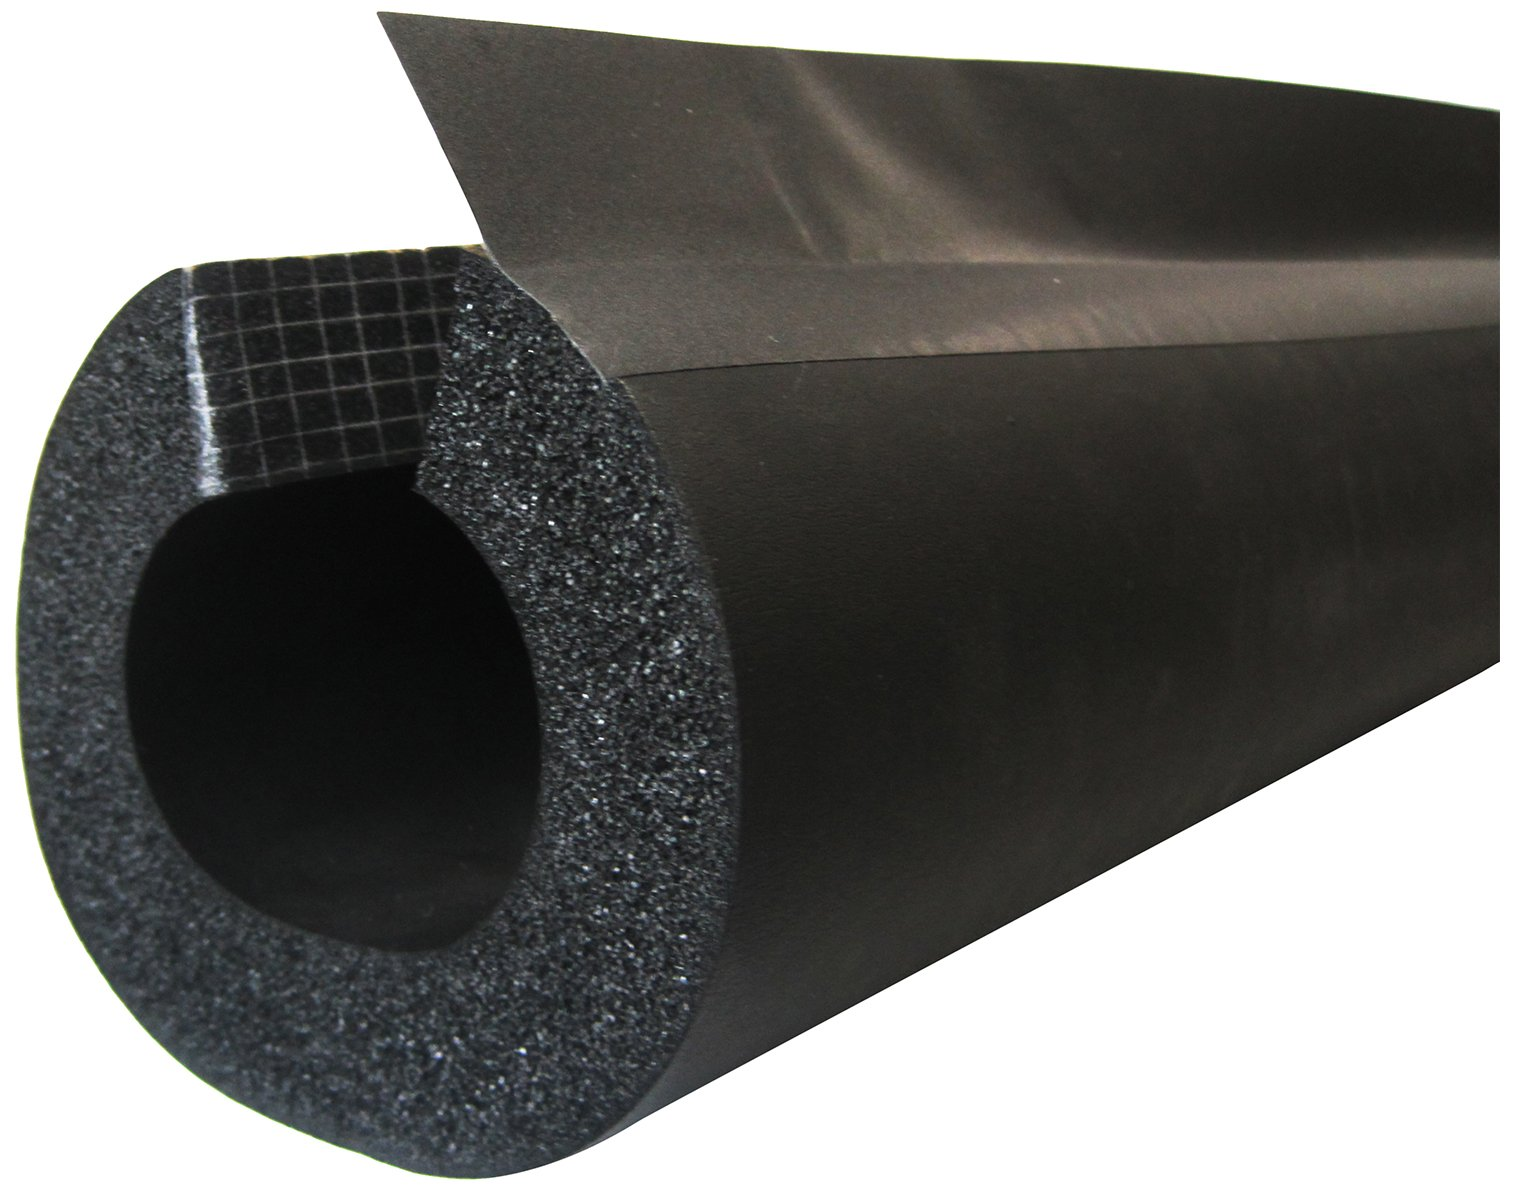 K-Flex 6RXLO100348 NBR/PVC Insul-Lock DS Tube with PVC Overlap Tape, 3-1/2'' Nominal Insulation ID, 6' Length, 1'' Wall Thickness, Black (Pack of 5)